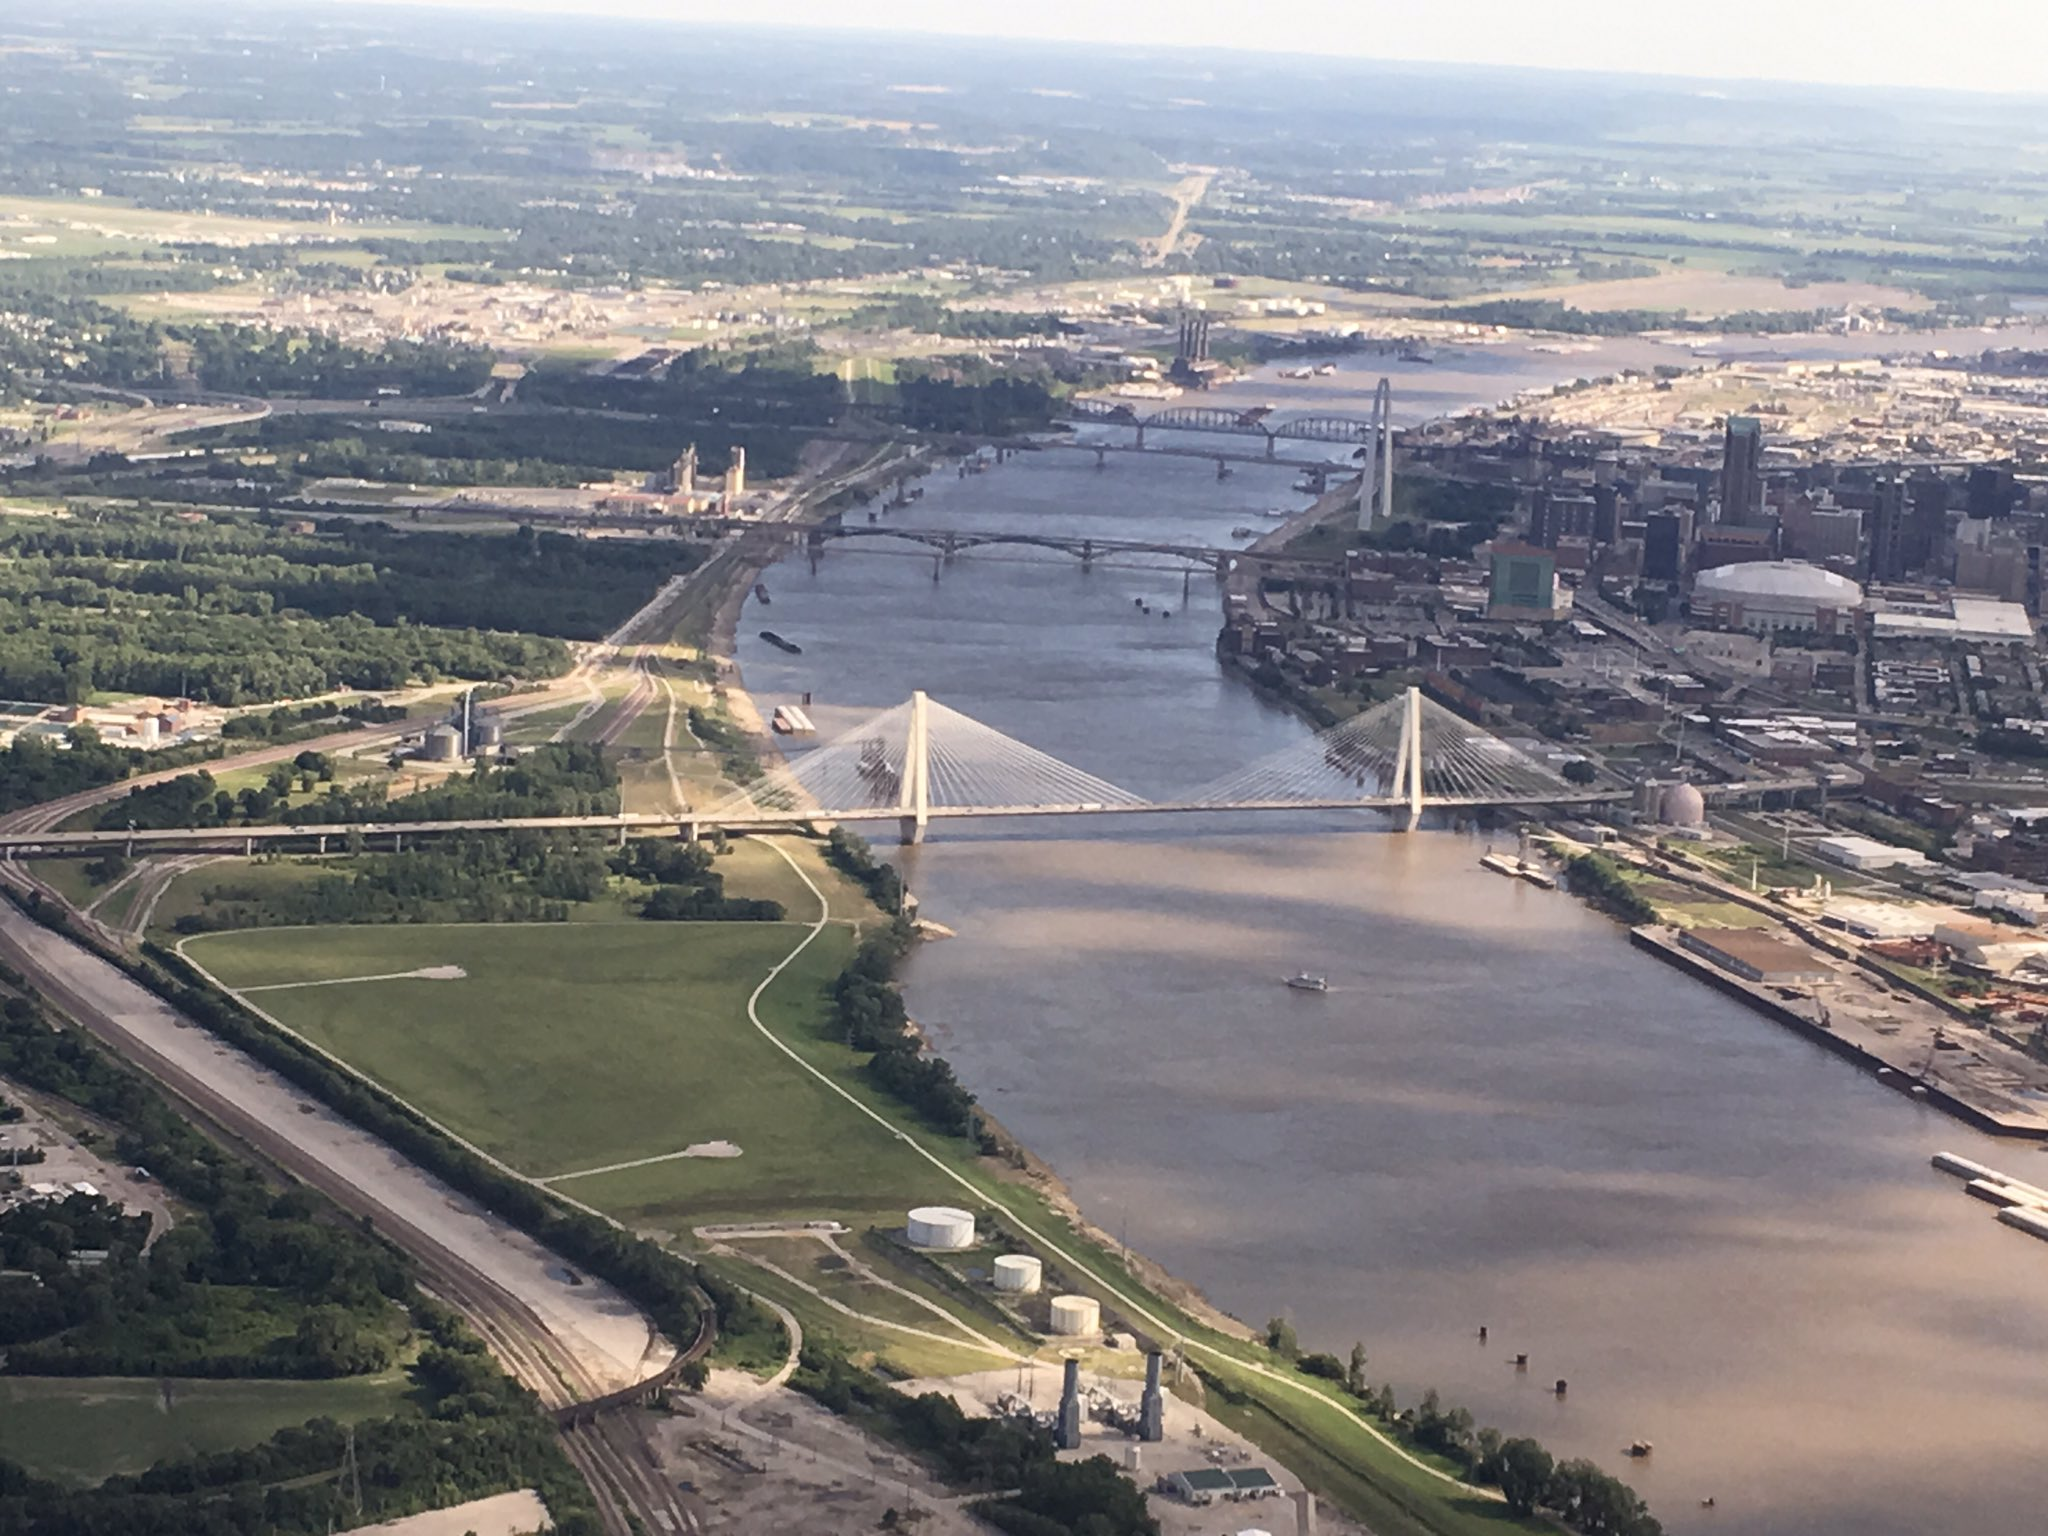 Rick Viestra working for STL tourist board at #icar2017 The arch from over the Mississippi earlier today after flying the Clark-Lewis route https://t.co/2jnfovAECQ